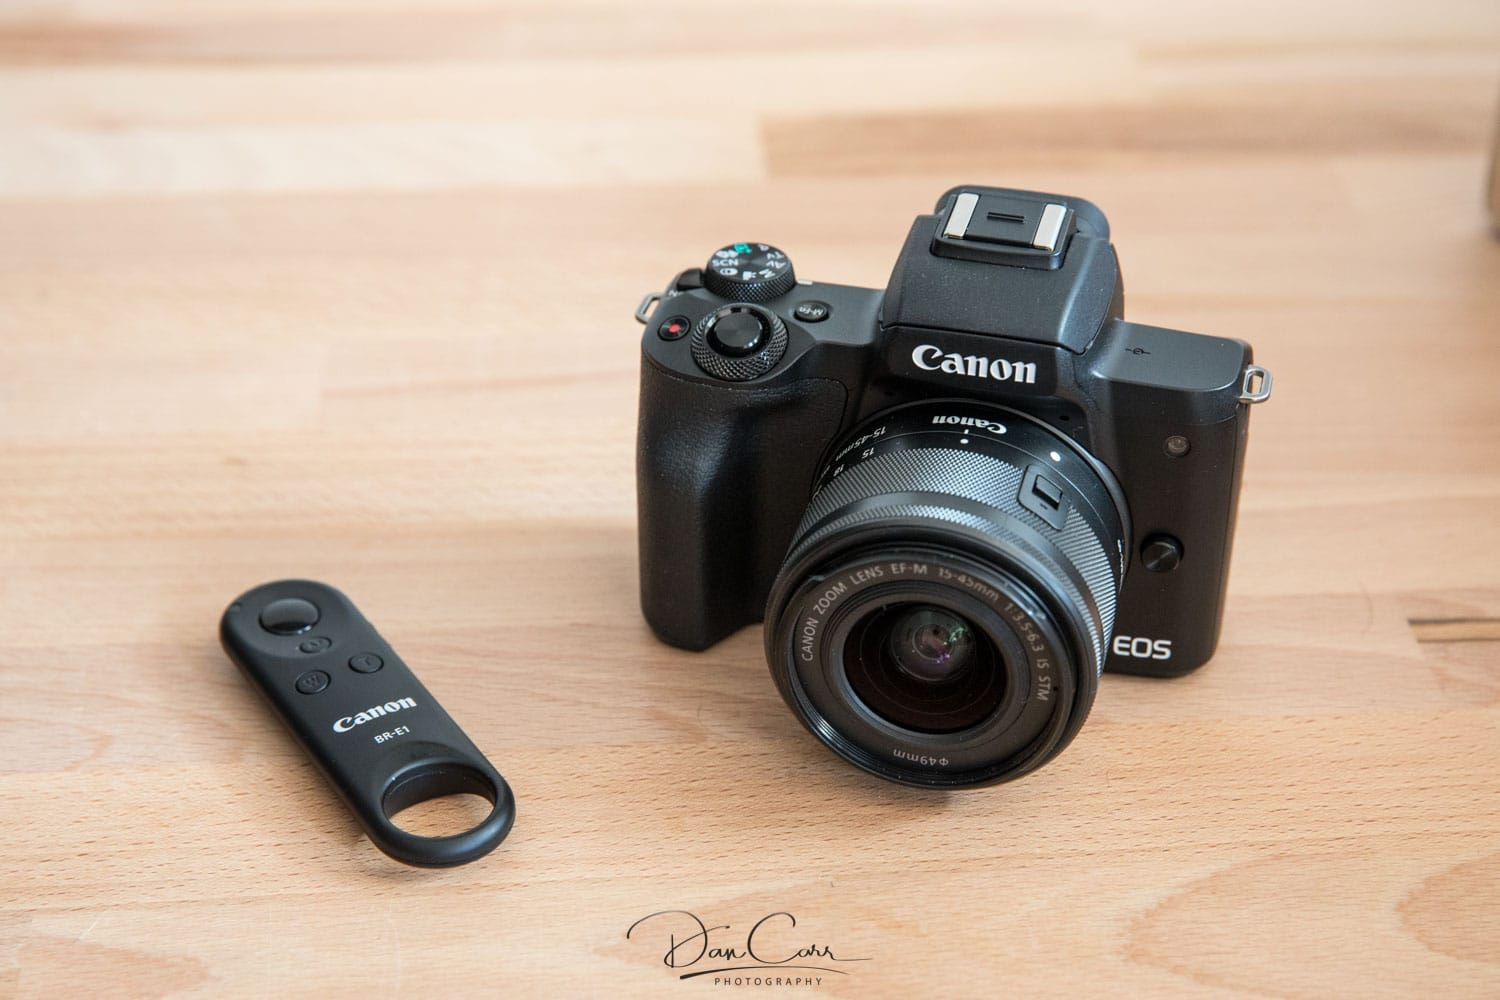 12 Best Accessories For The Canon Eos M50 In 2020 Canon Accessories Canon Camera Canon Eos